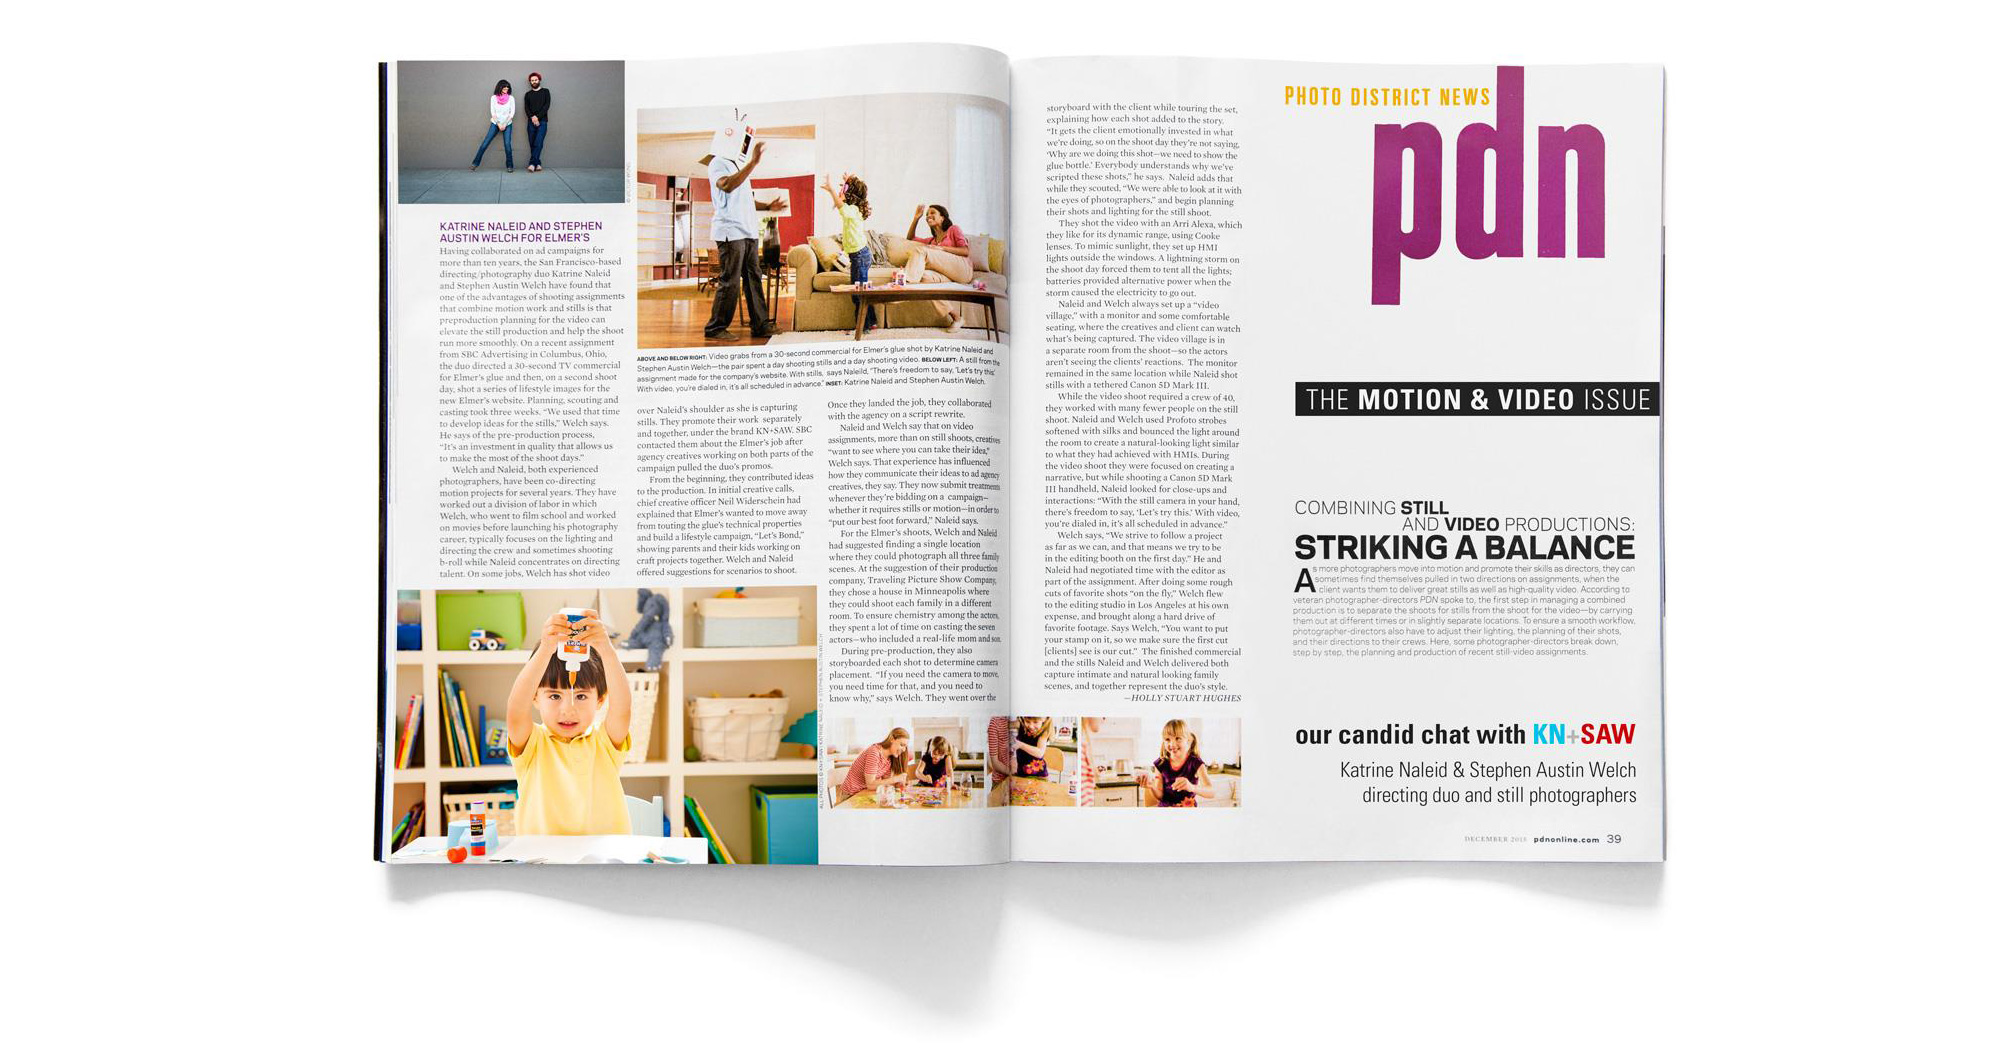 KN+SAW | Katrine Naleid + Stephen Austin Welch | directing duo Photo District News magazine article Striking A Balance PDN's candid chat with kids and lifestyle directors and potographers KN+SAW from the motion and video issue spread